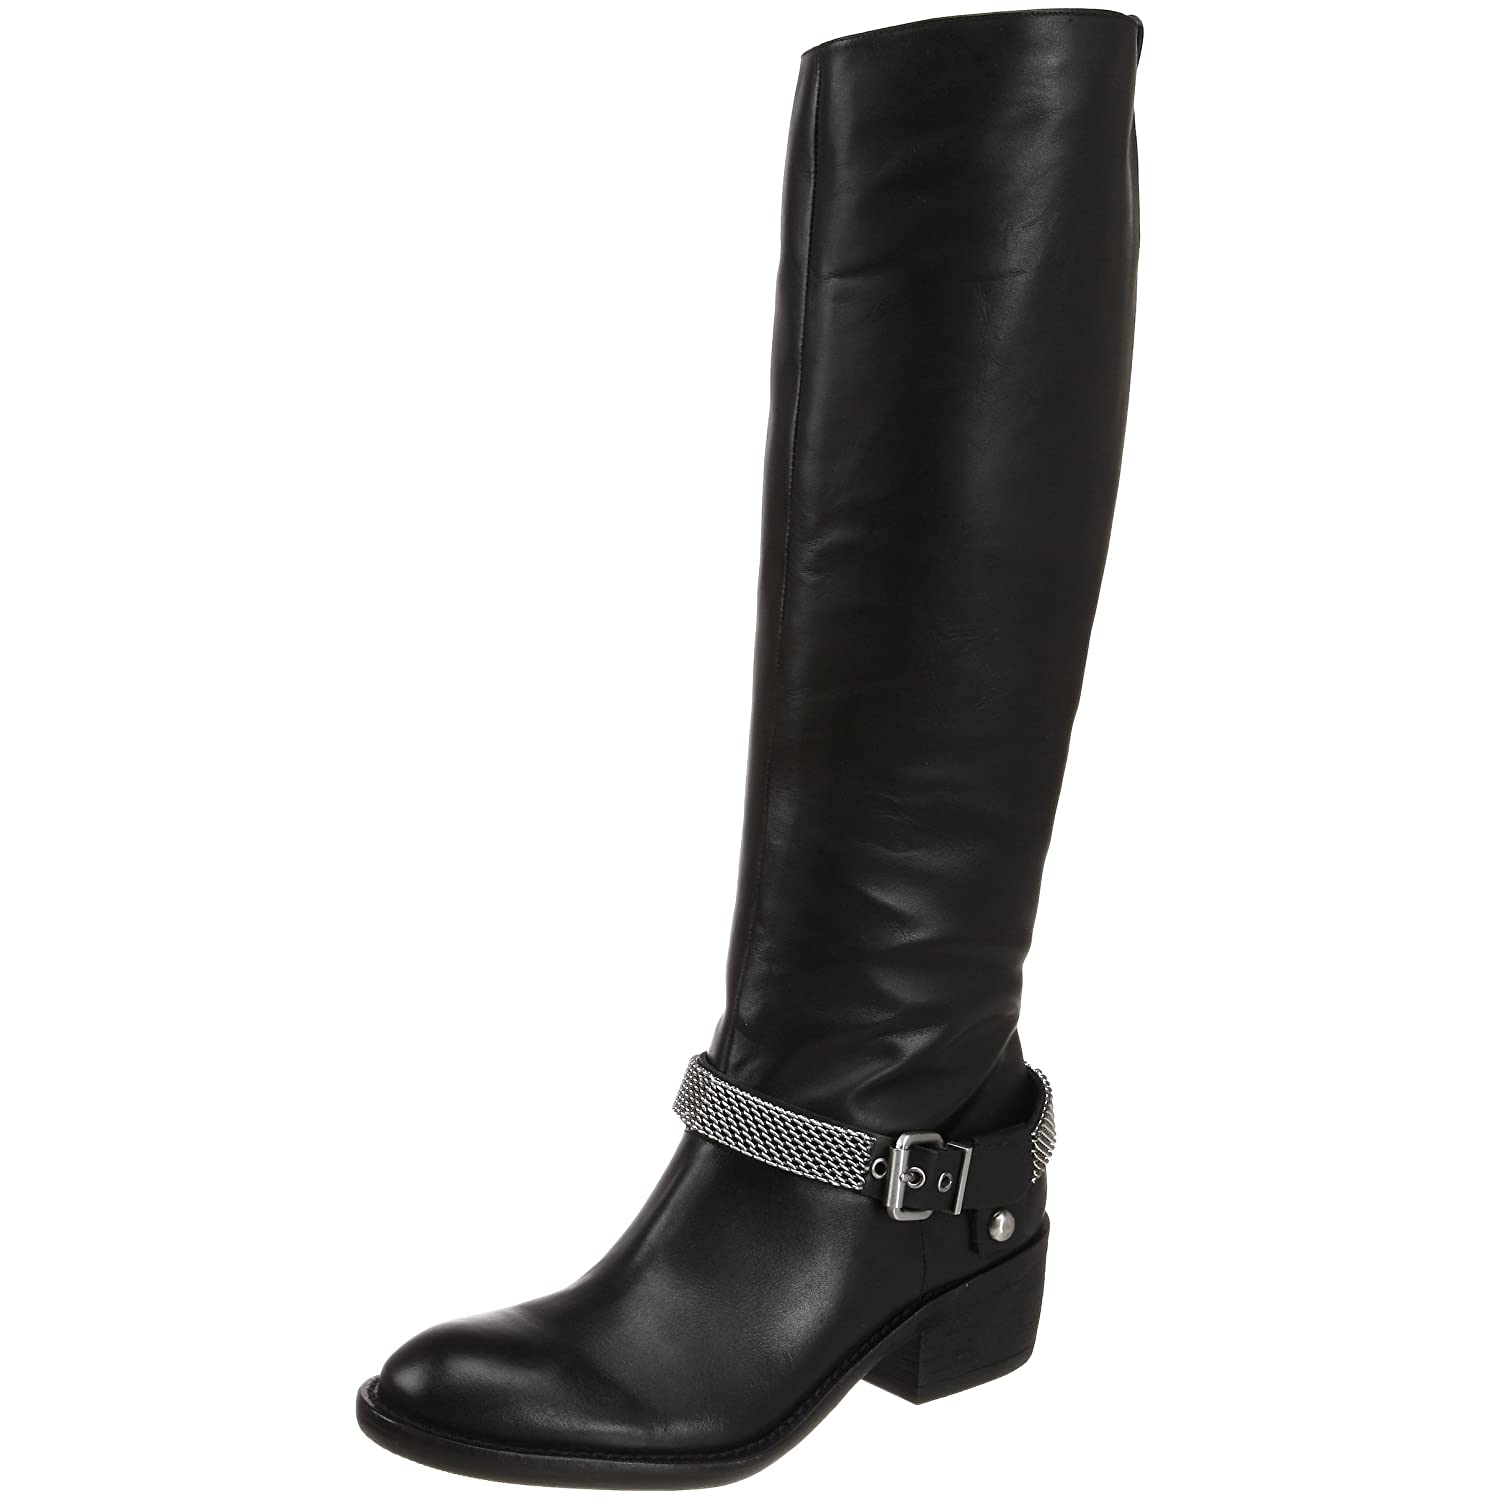 BCBGirls - Alender Knee-High Boot from endless.com